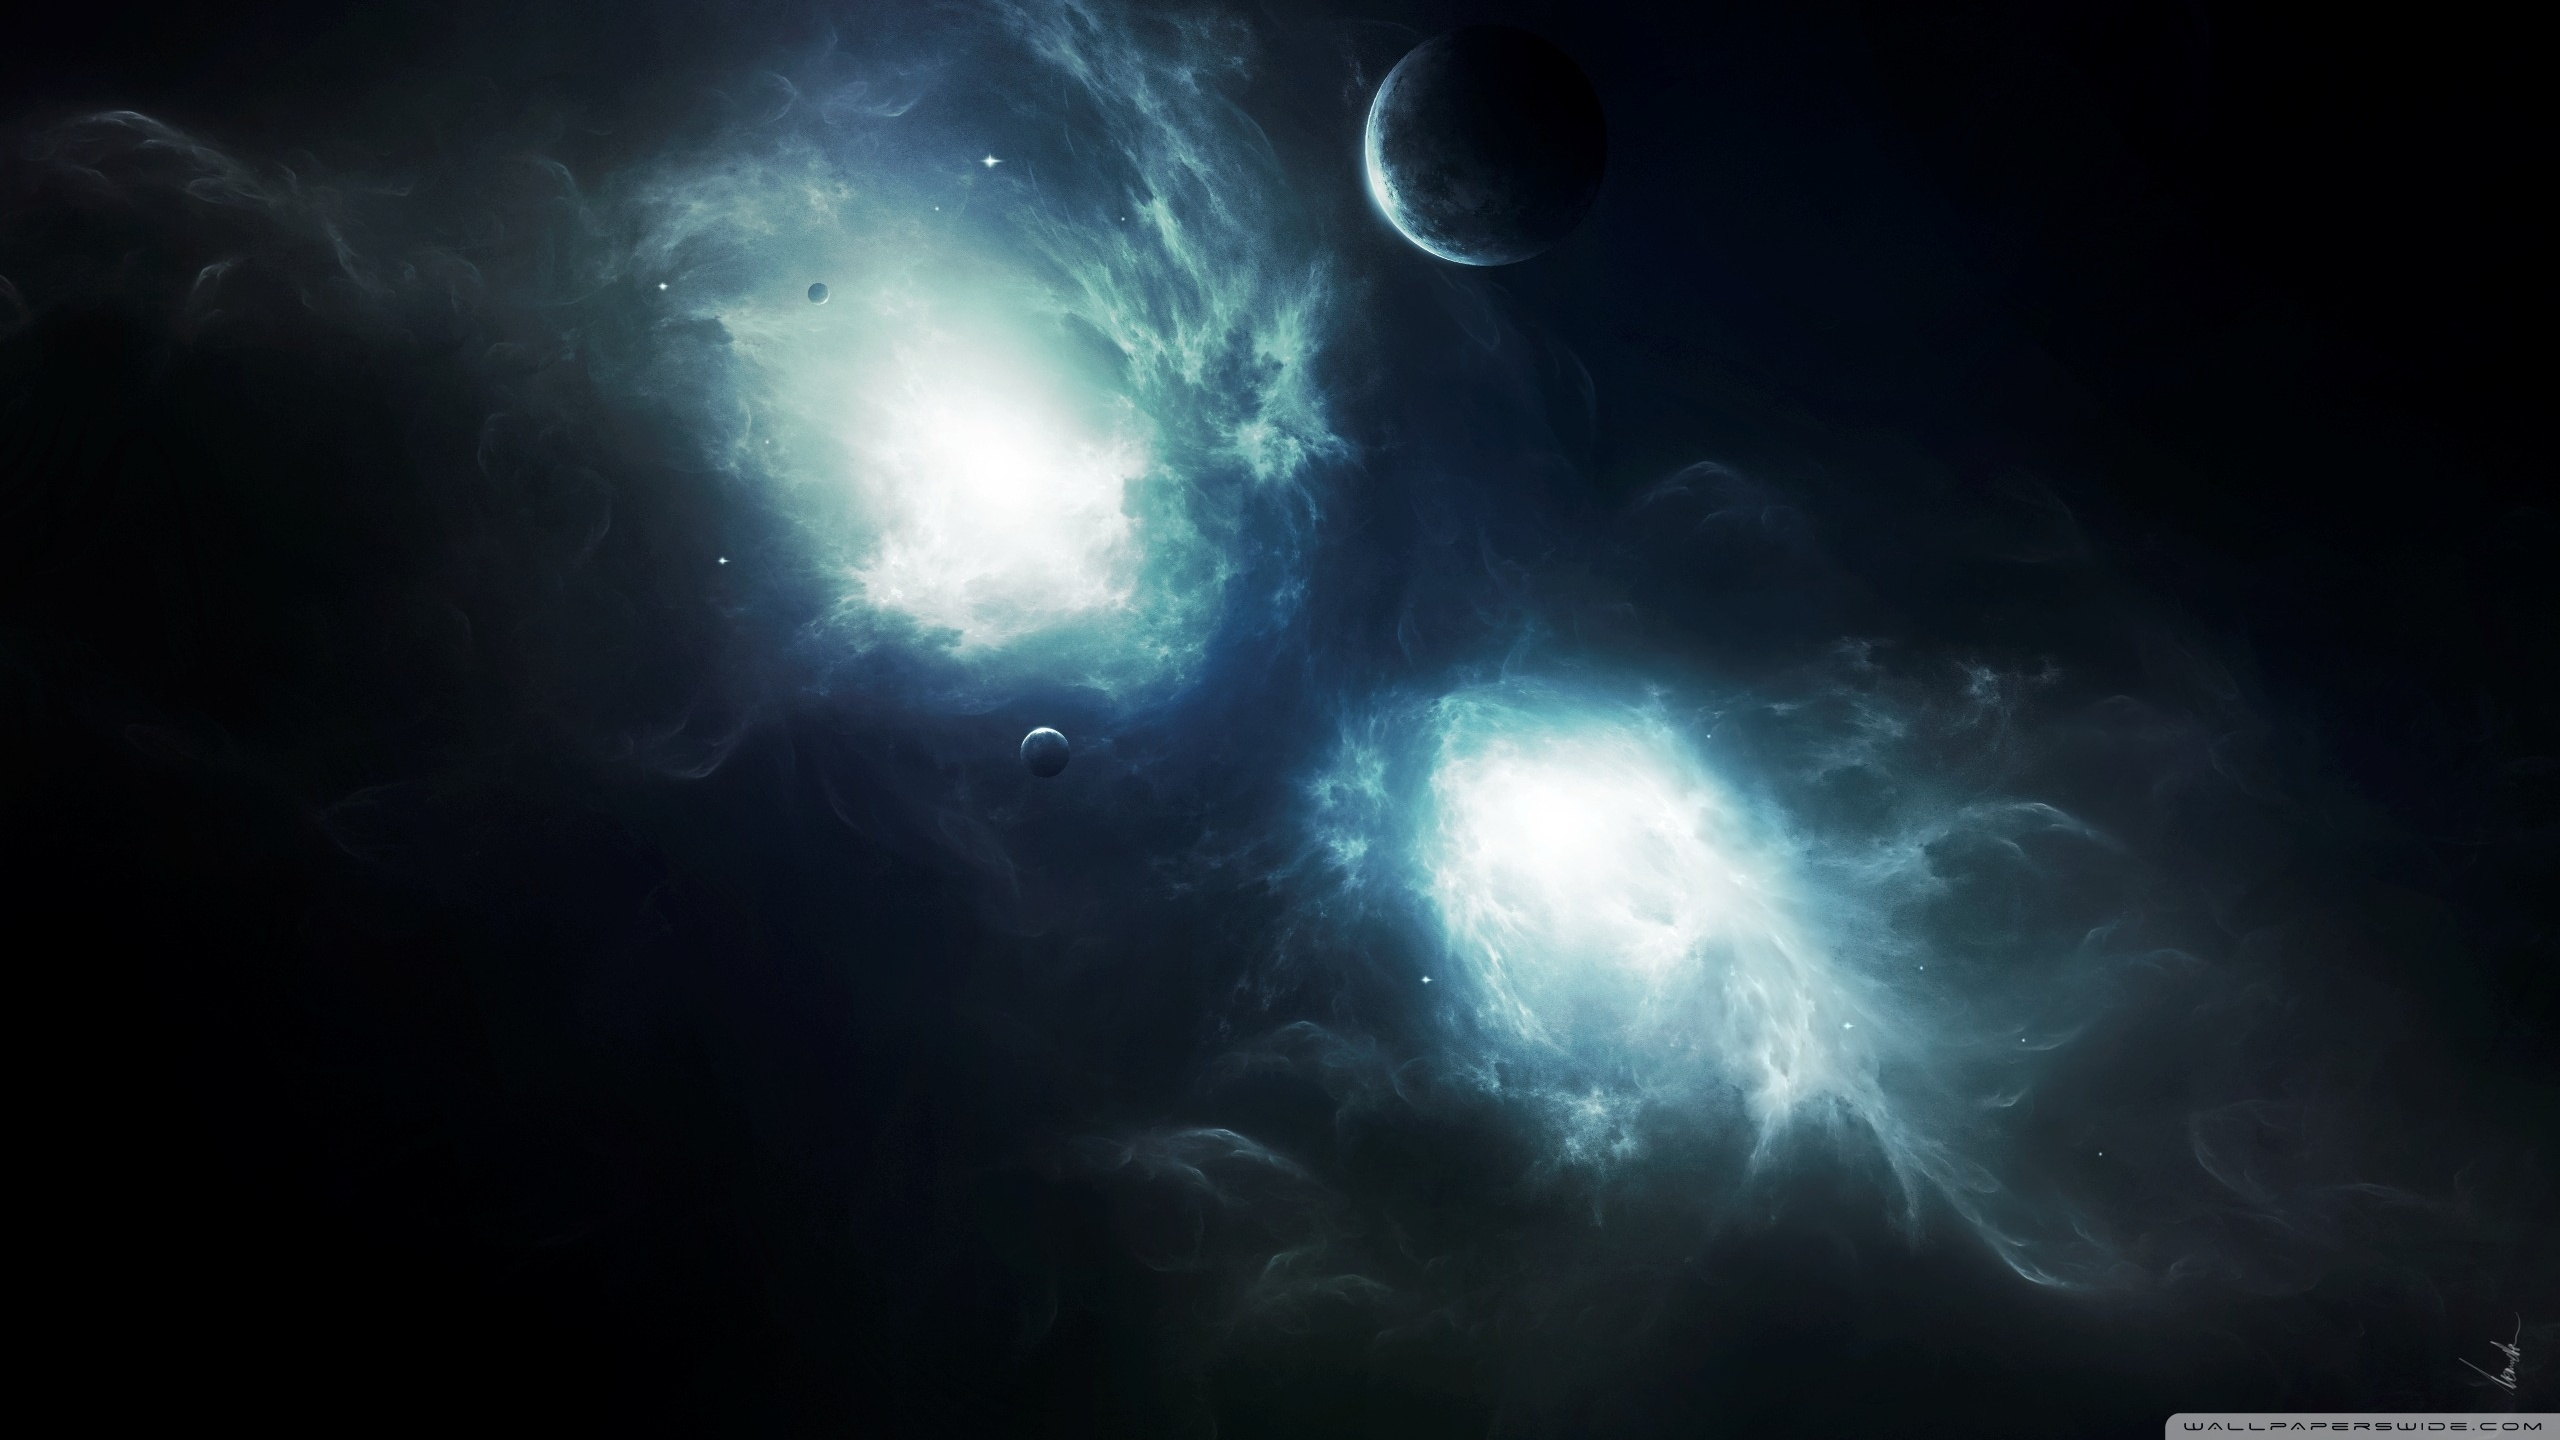 wormhole wallpaper space - photo #31